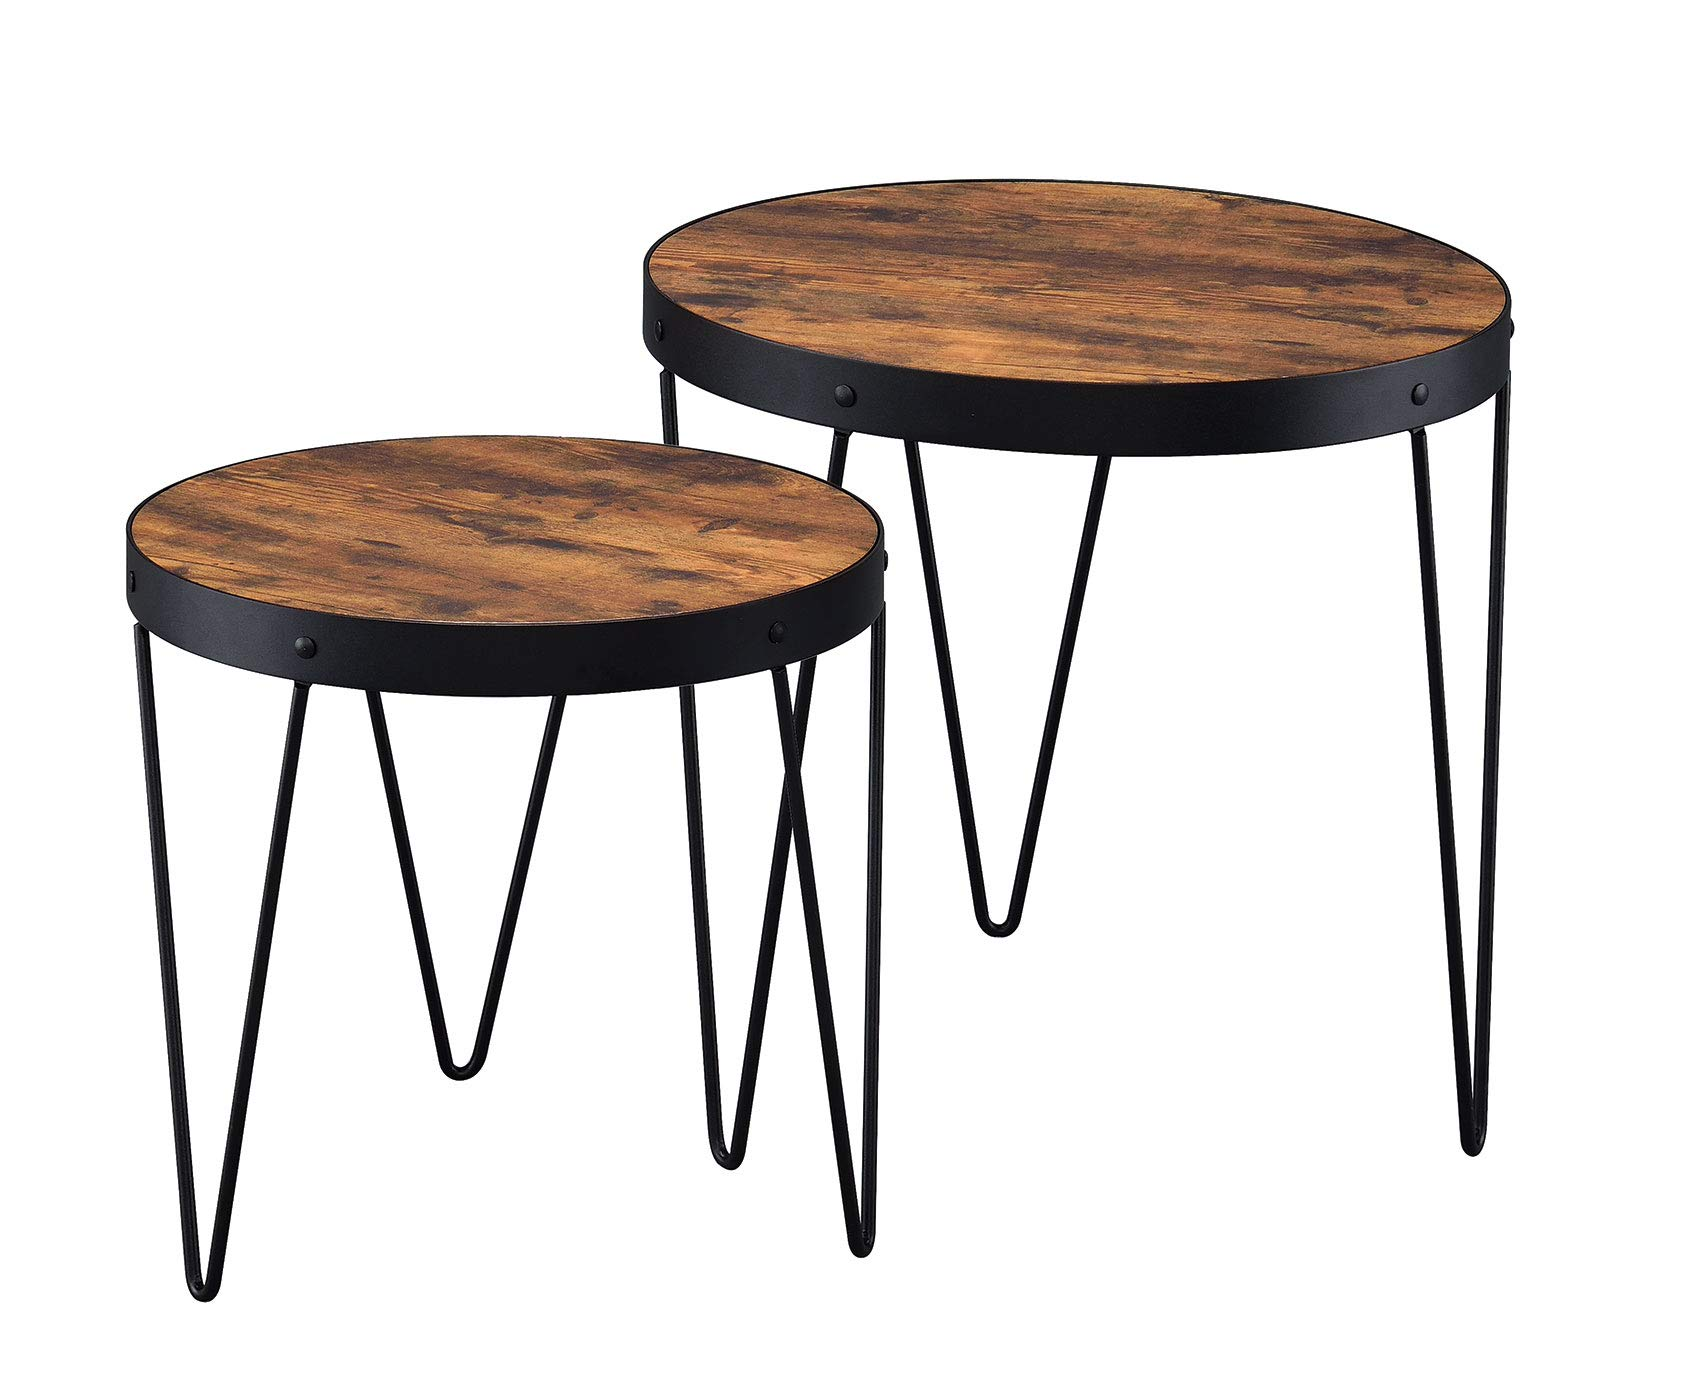 Coaster Home Furnishings 2-piece Nesting Table Set with Hairpin Legs Honey Cherry and Black by Coaster Home Furnishings